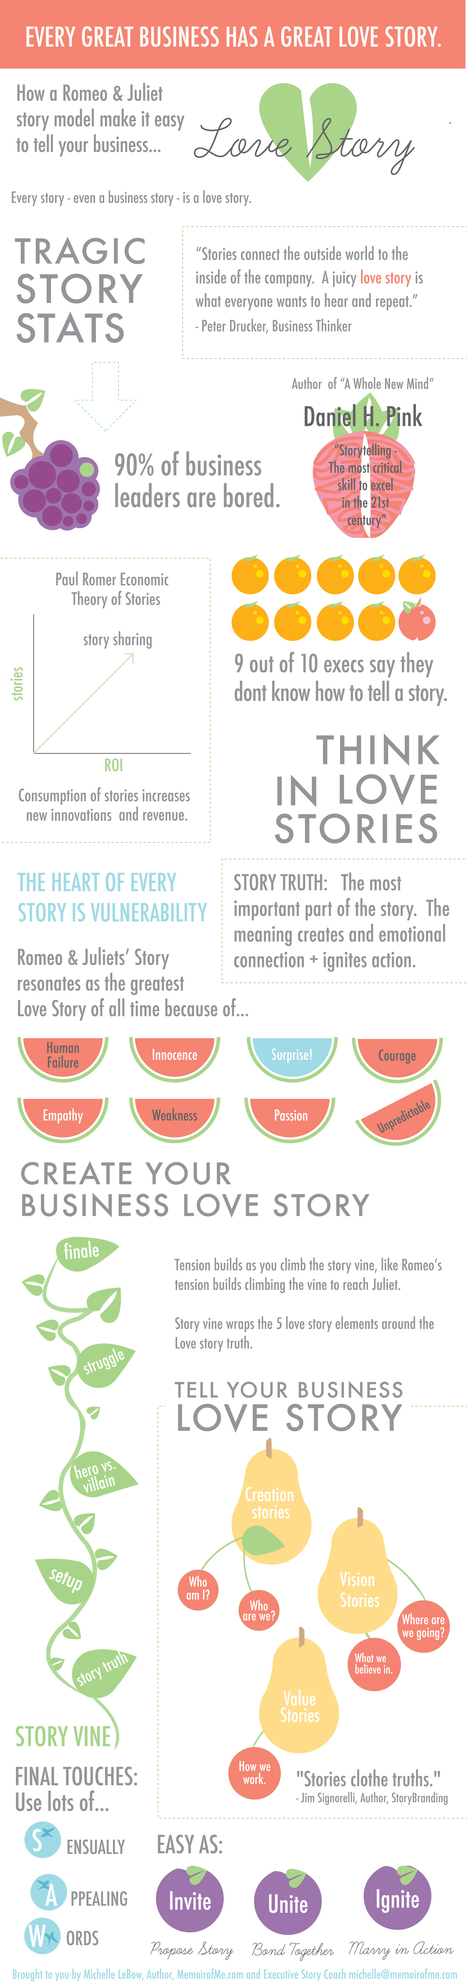 Romeo | Visual.ly | StoryBranding: How brands can embrace the power of story | Scoop.it